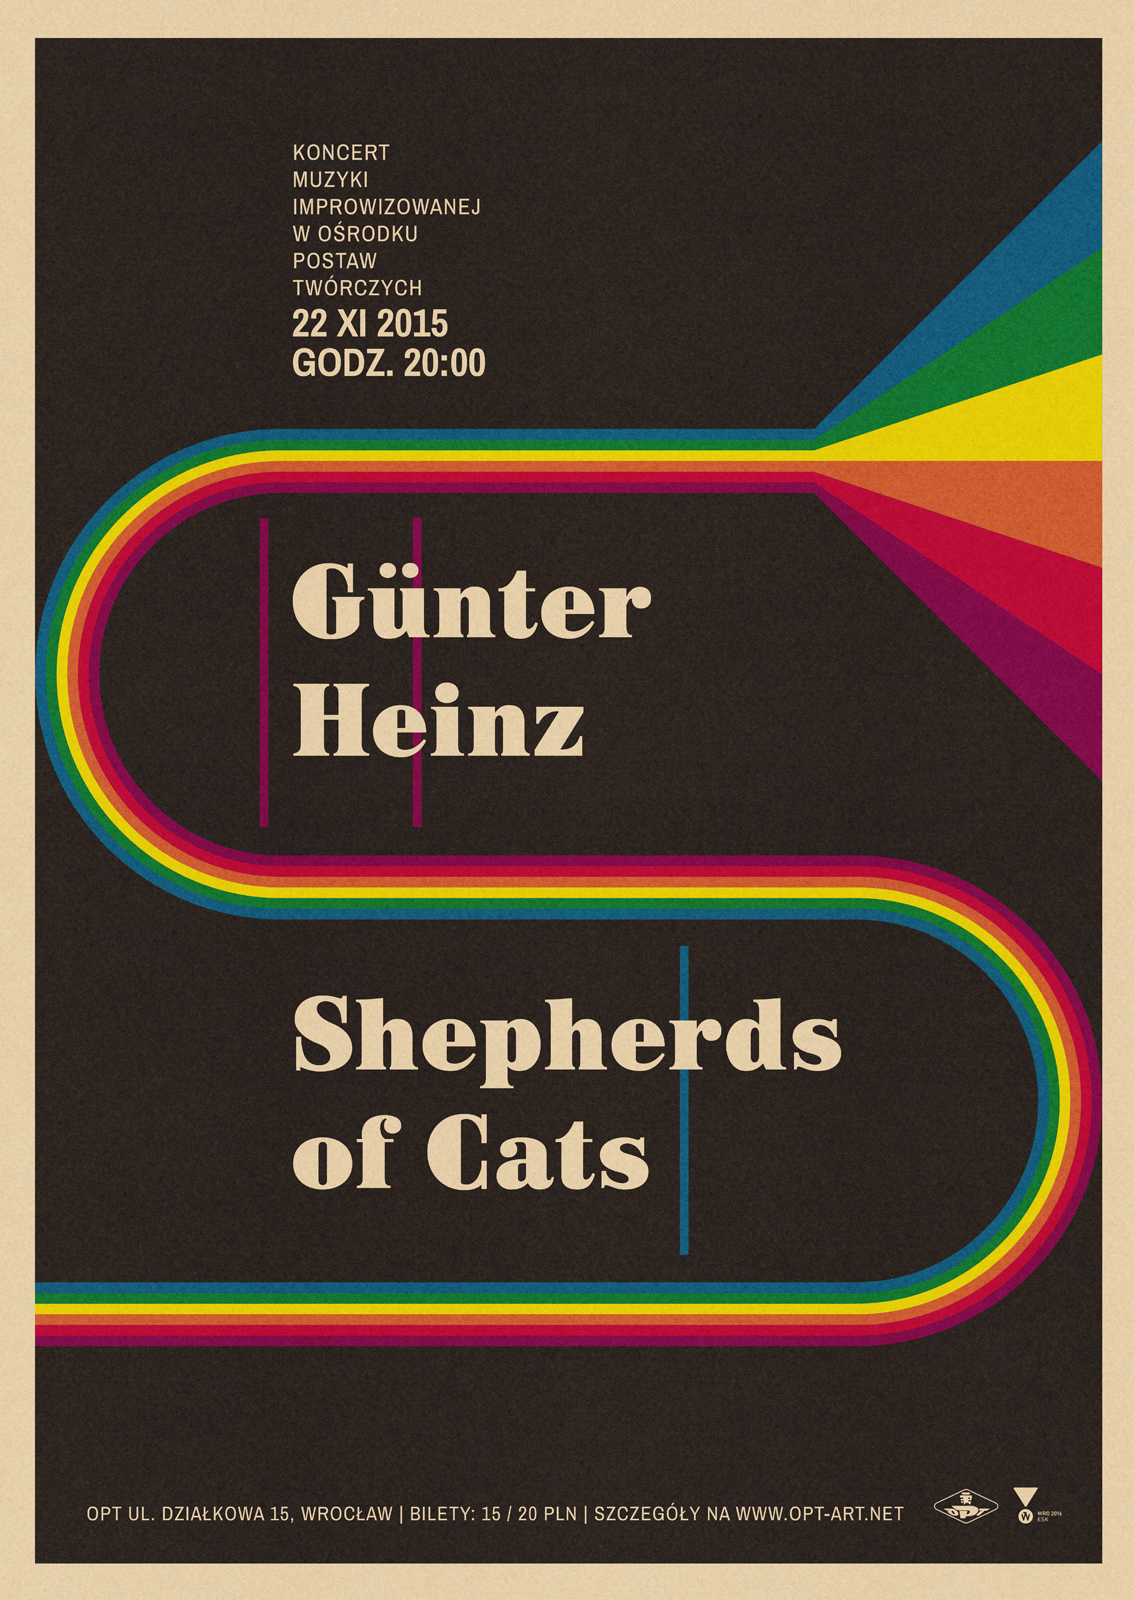 Günter Heinz & Shepherds of Cats